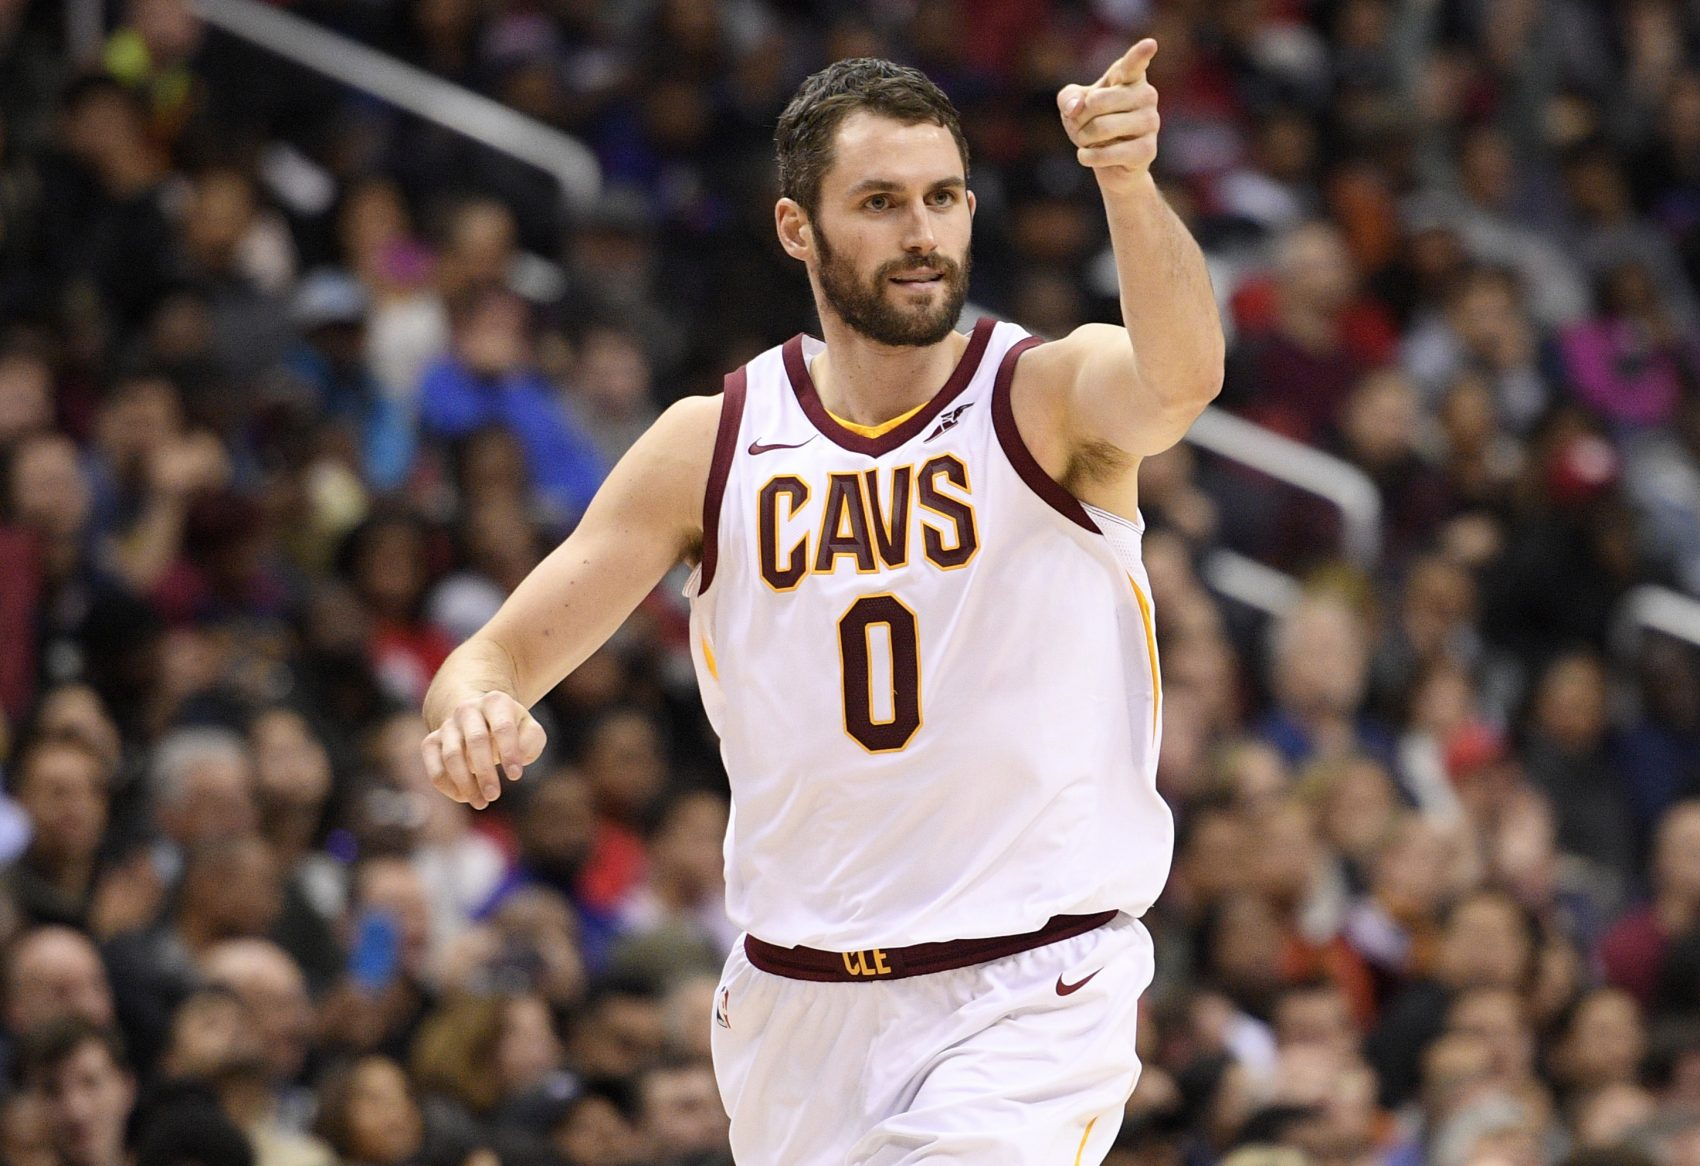 Cleveland Cavaliers forward Kevin Love (0) points after he scored during the second half of an NBA basketball game against the Washington Wizards, Sunday, Dec. 17, 2017, in Washington. The Cavaliers won 106-99. (AP Photo/Nick Wass)